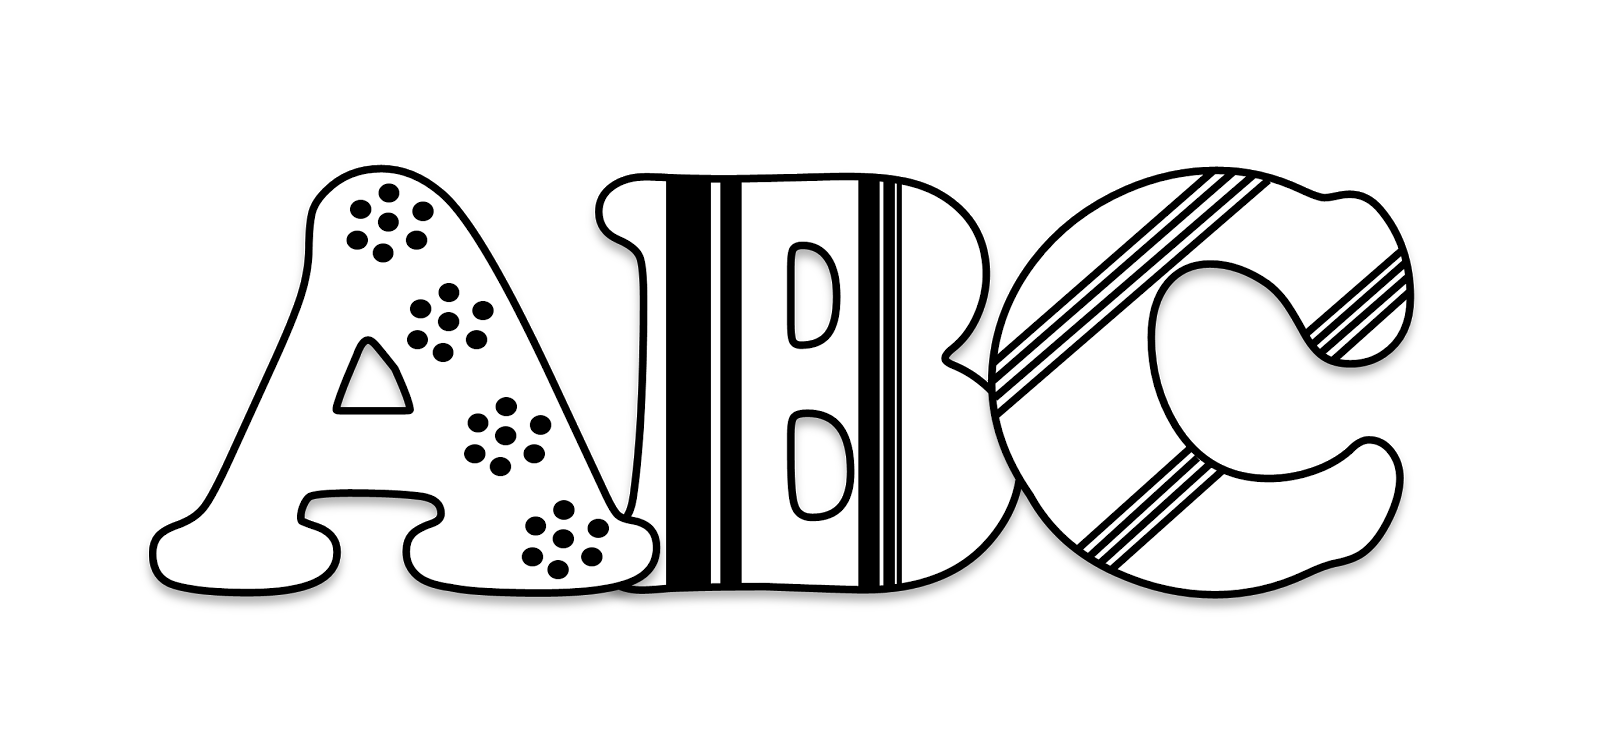 My abc book clipart clip free Image Of Coloring Book Abc Blocks | colorimage.website clip free